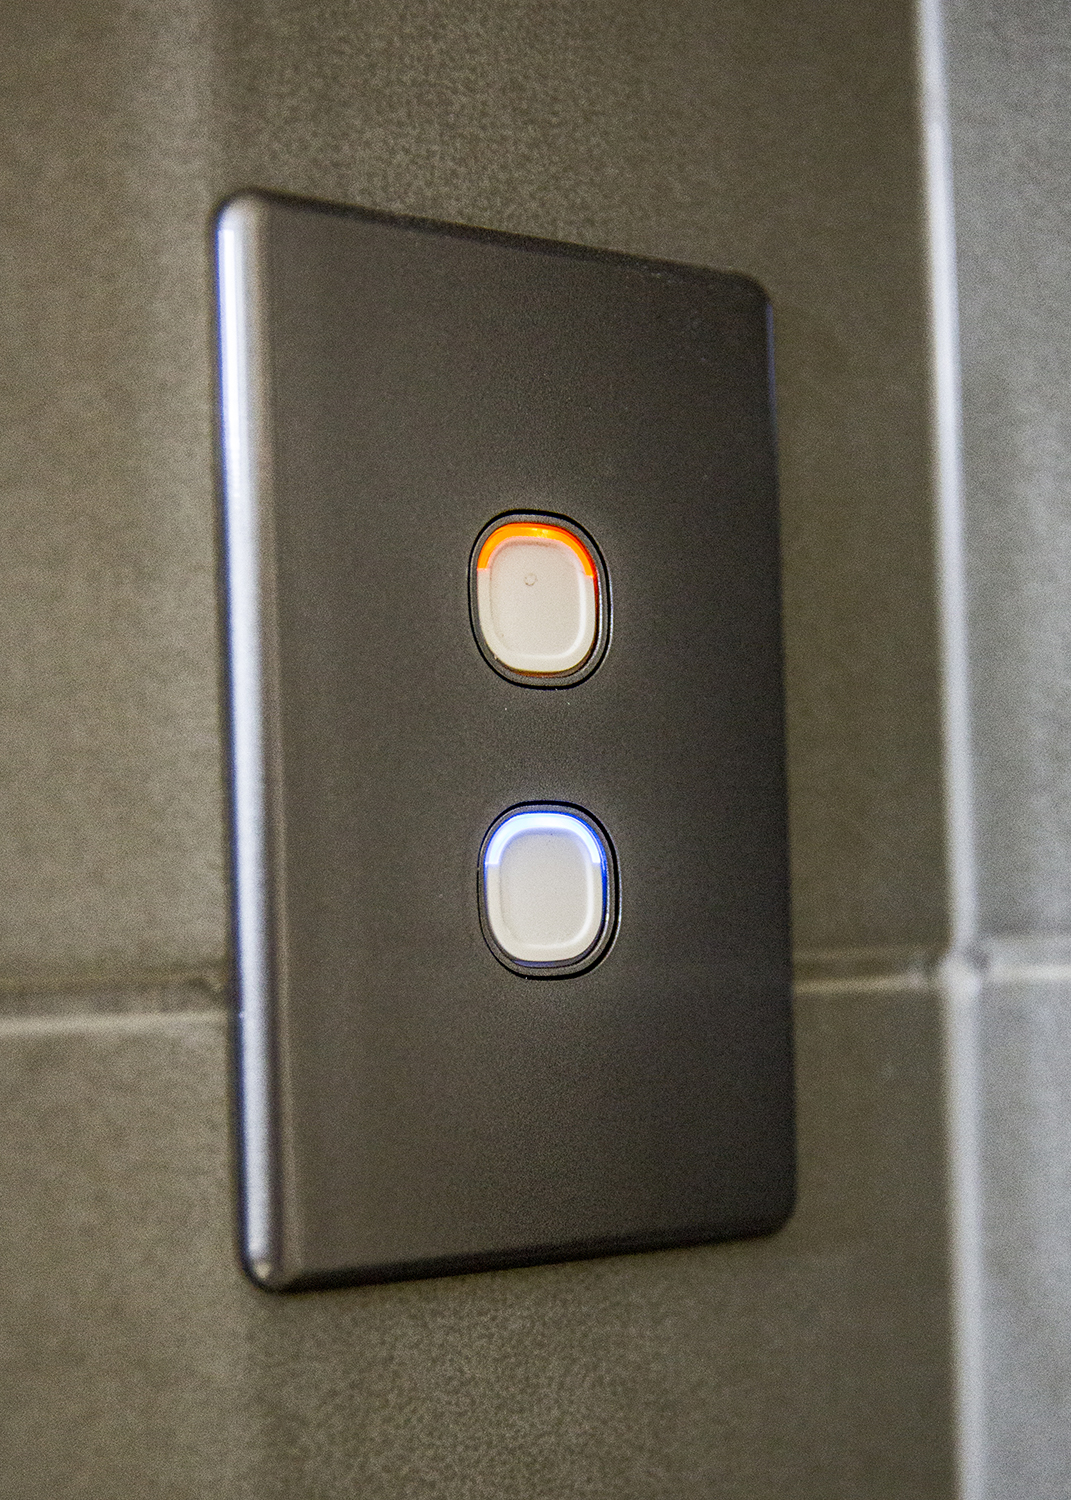 CBUS Home Automation LED Backlit Switch.jpg